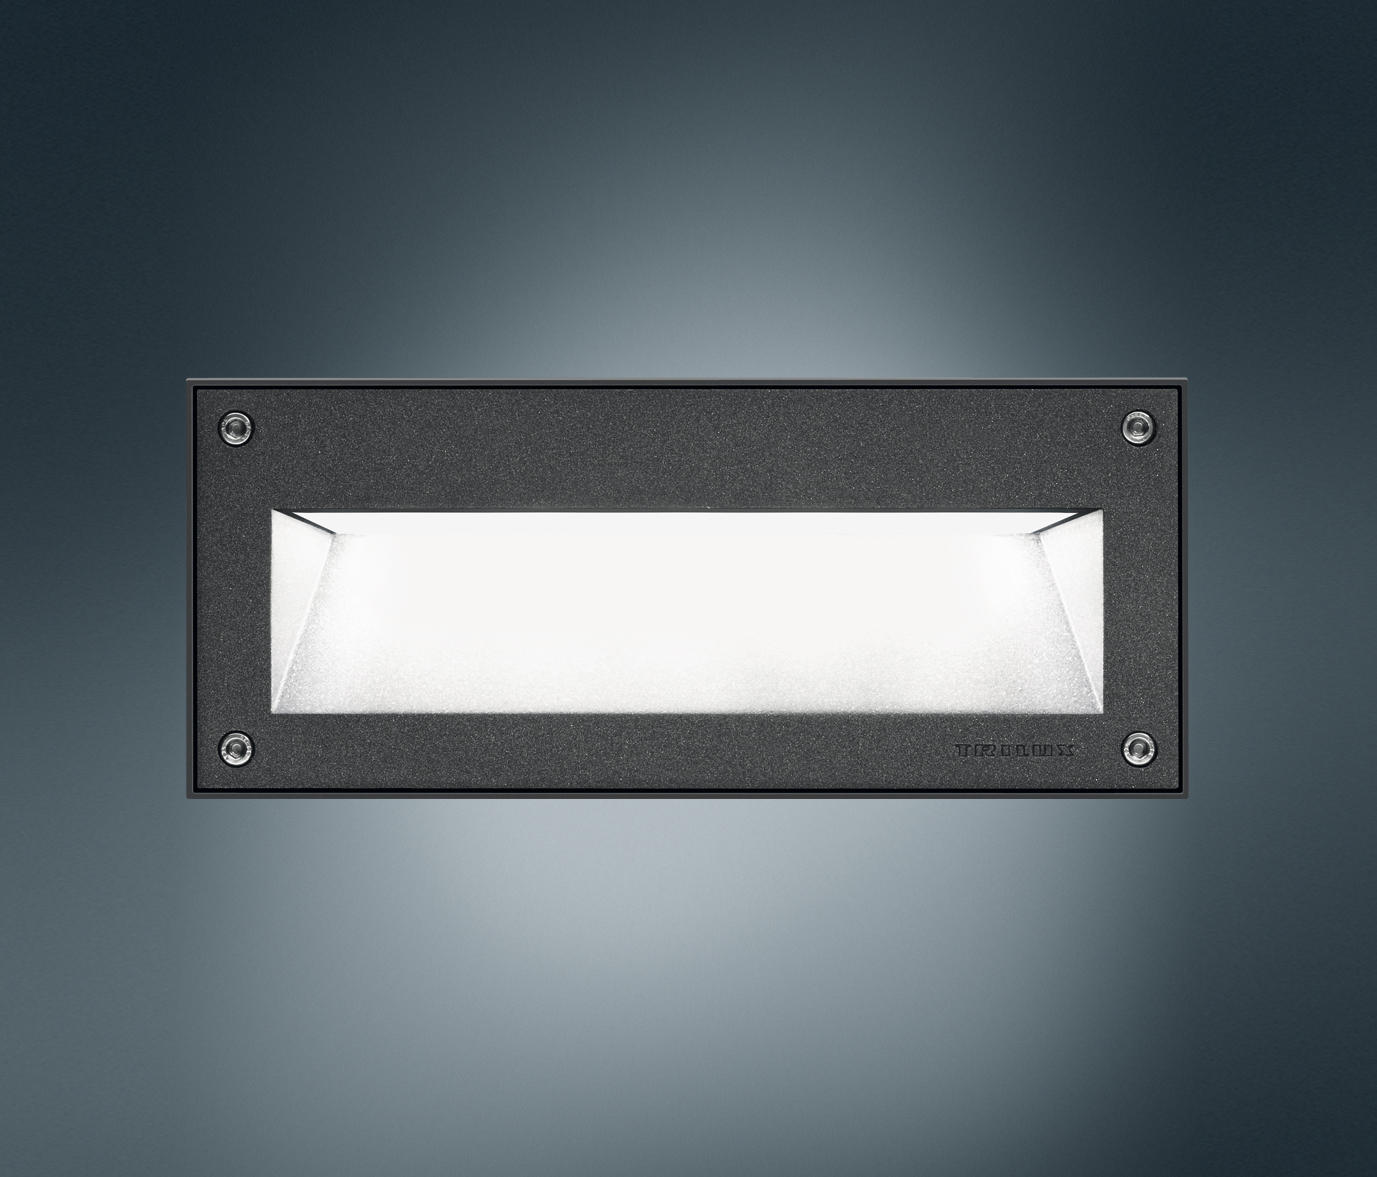 Trilux Led Warehouse Lighting: PAREDA R PLAN LED - General Lighting From Trilux